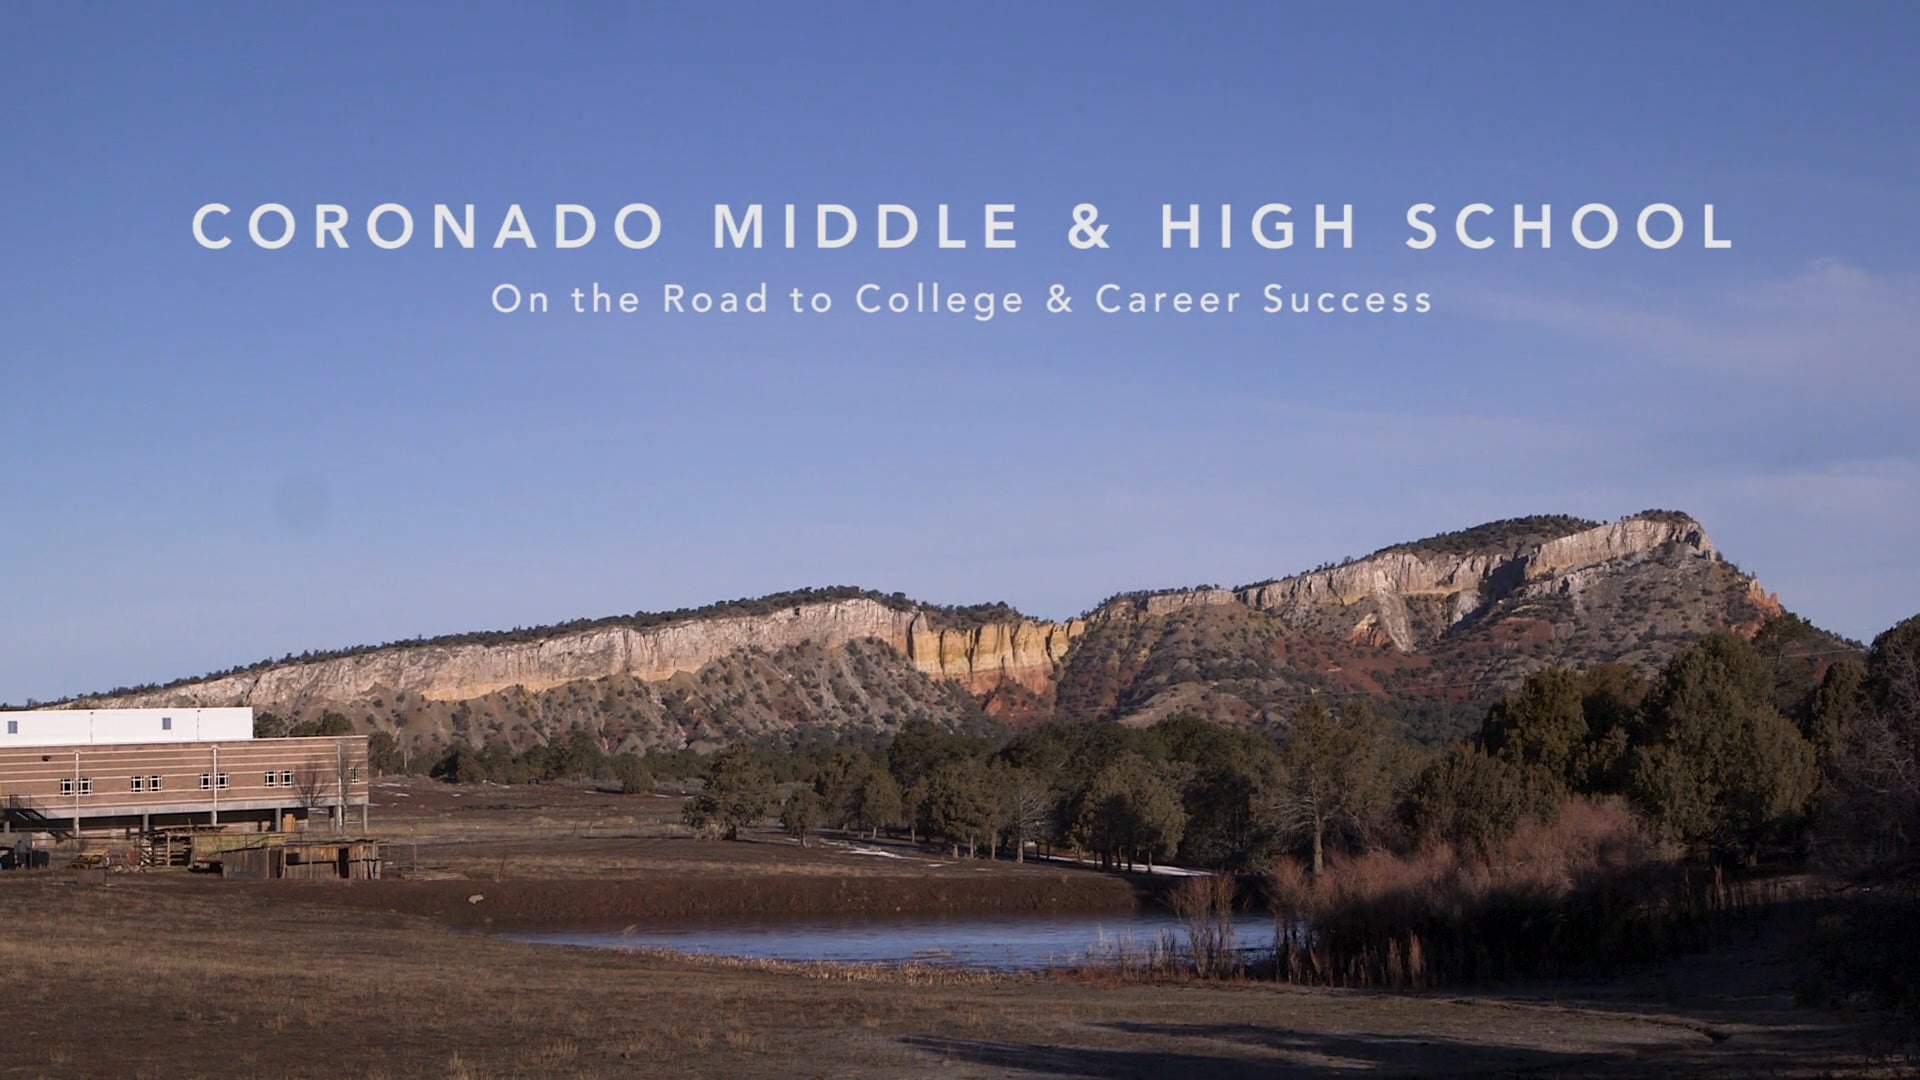 Coronado Middle & High School: On the Road to College & Career Success